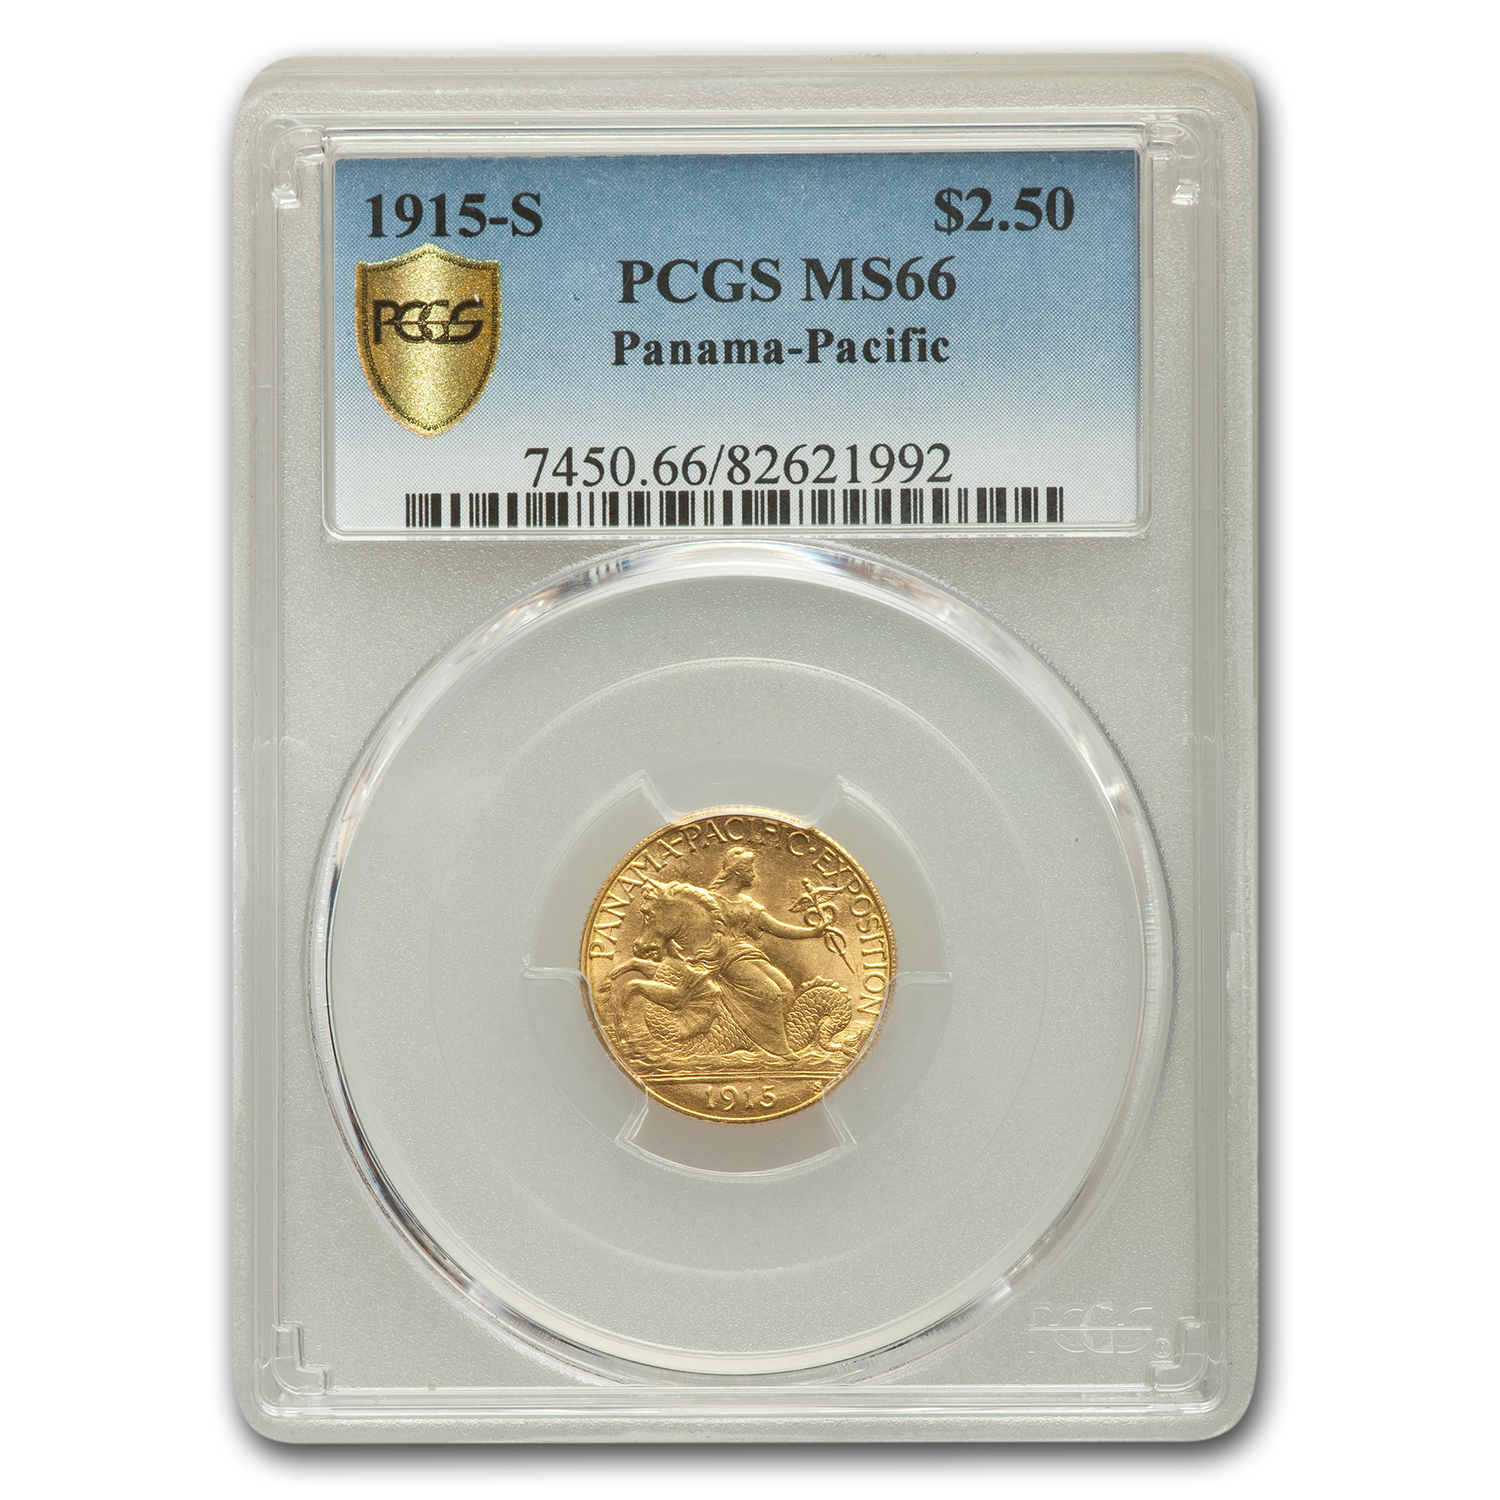 1915-S $2.50 Gold Panama-Pacific MS-66 PCGS